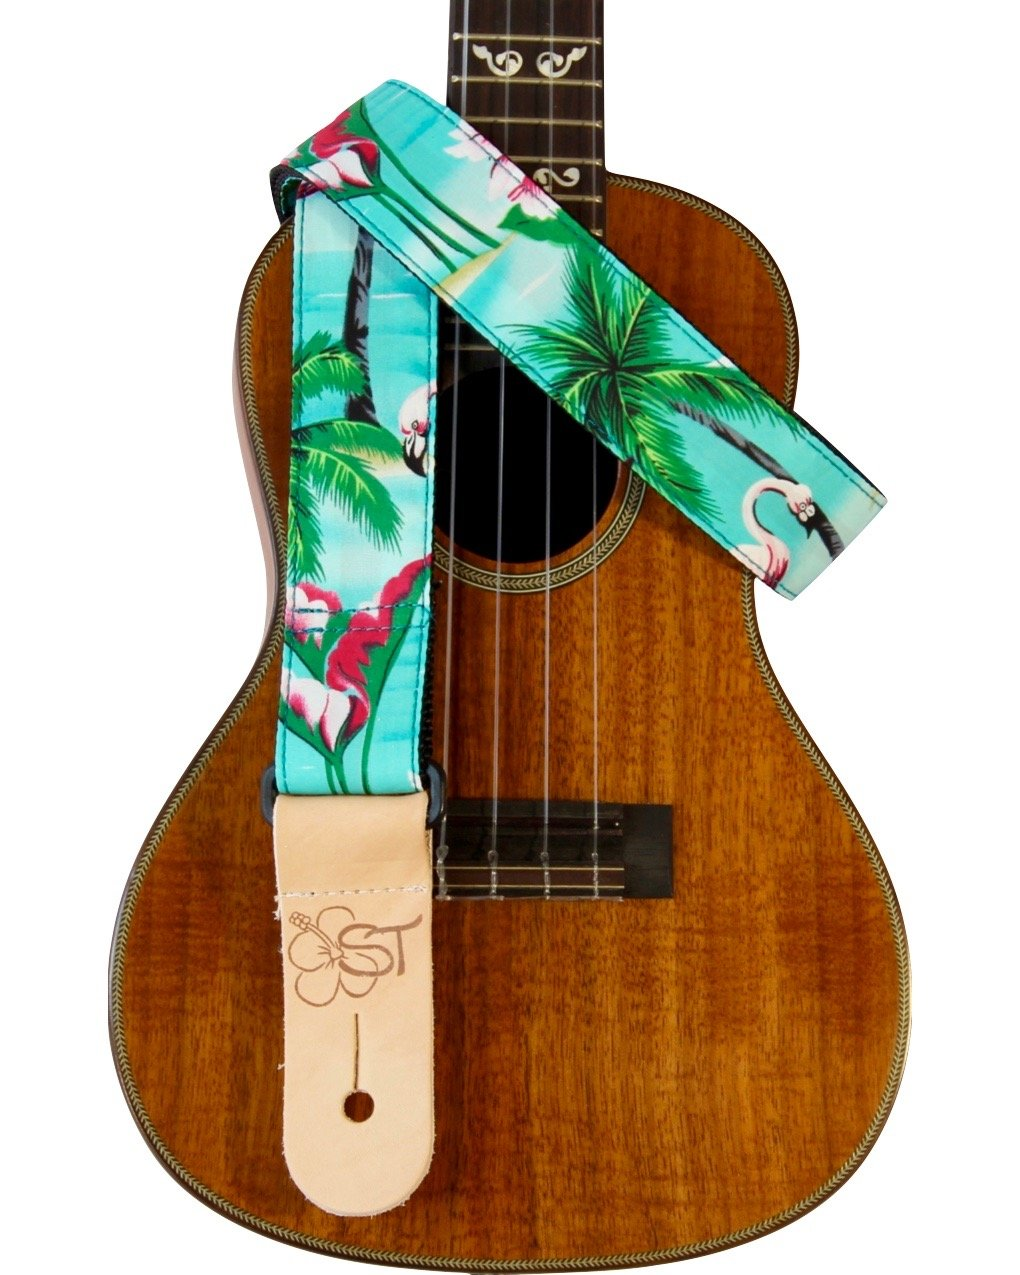 Sherrin's Threads 1.5 Hawaiian Print Ukulele Strap - Flamingo